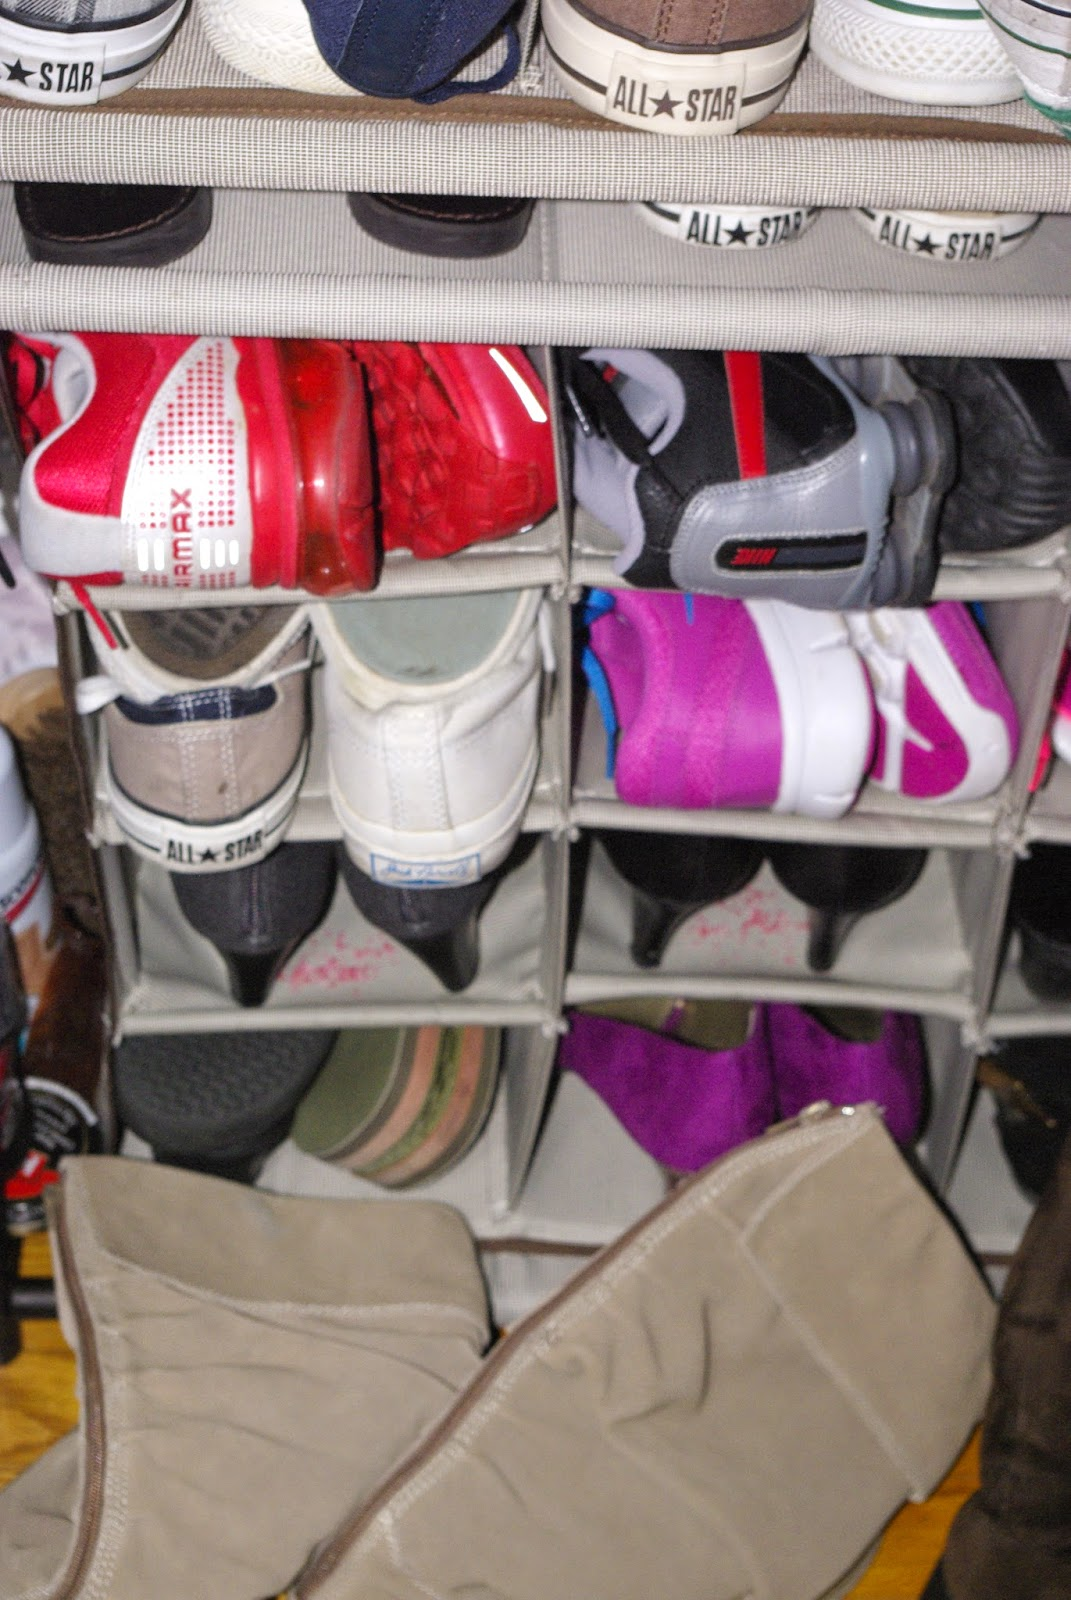 Notice the pink crystals in the shoe rack?